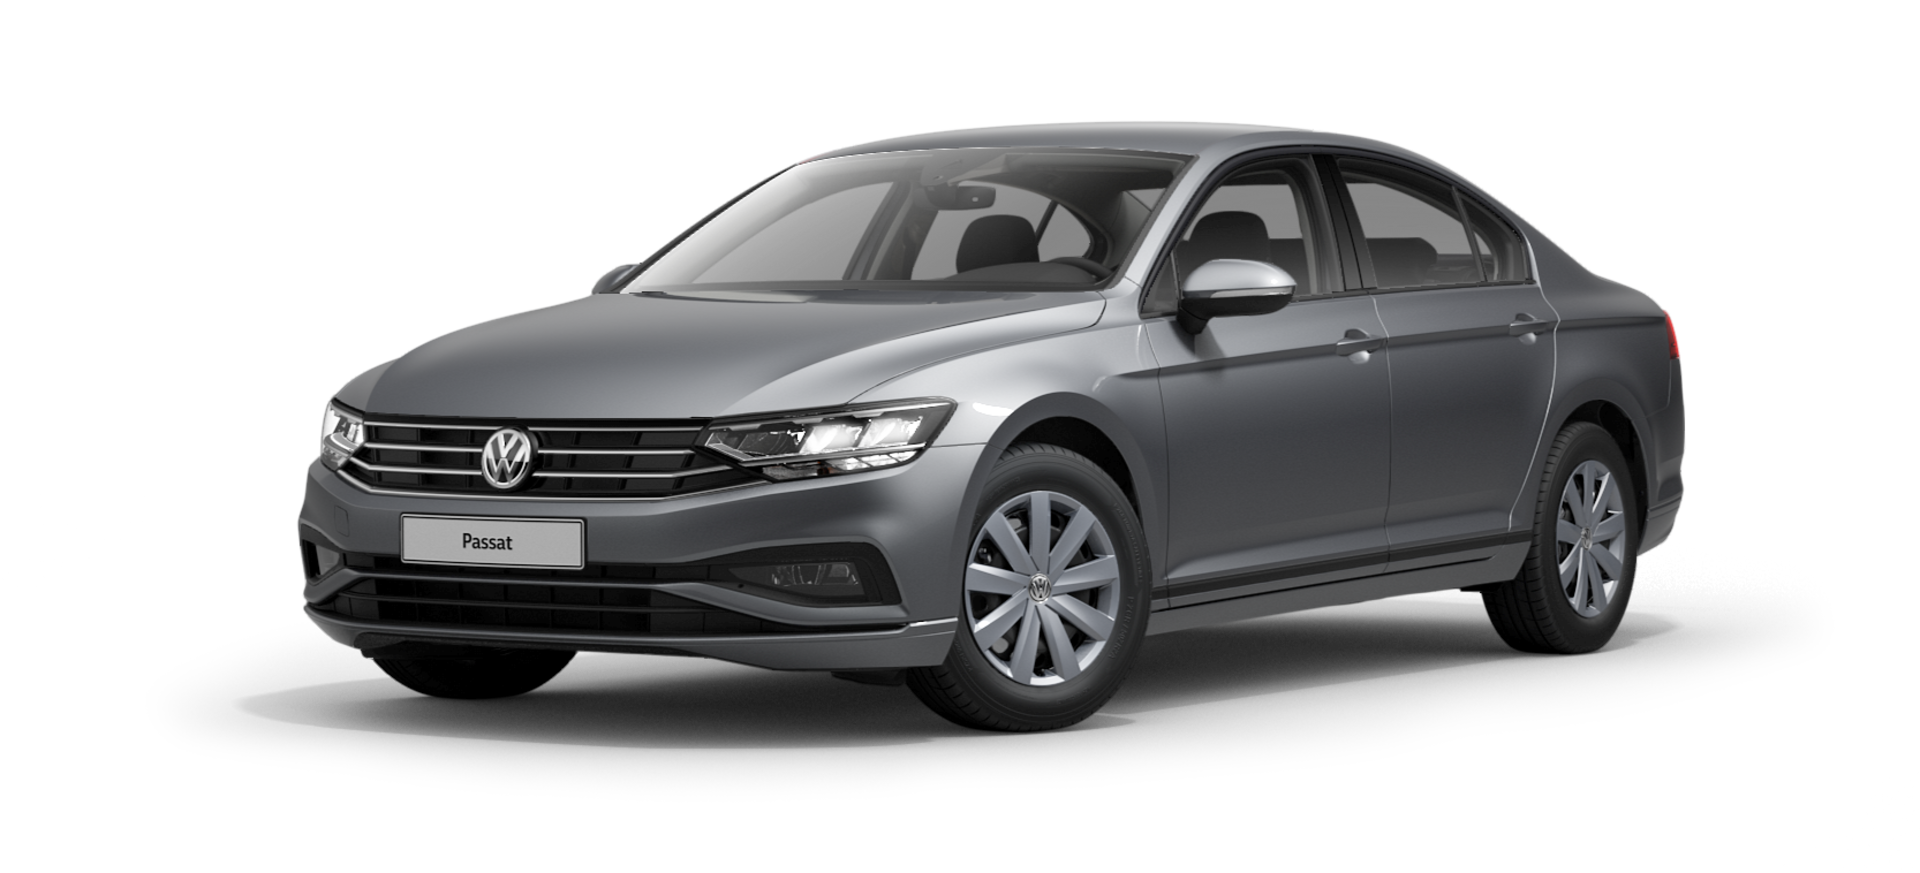 Noul Passat Advance 1.6 TDI DSG / 120 CP/88 kW / 1.6l / Direct Shift Gearbox / 4-usi : Volkswagen Passat